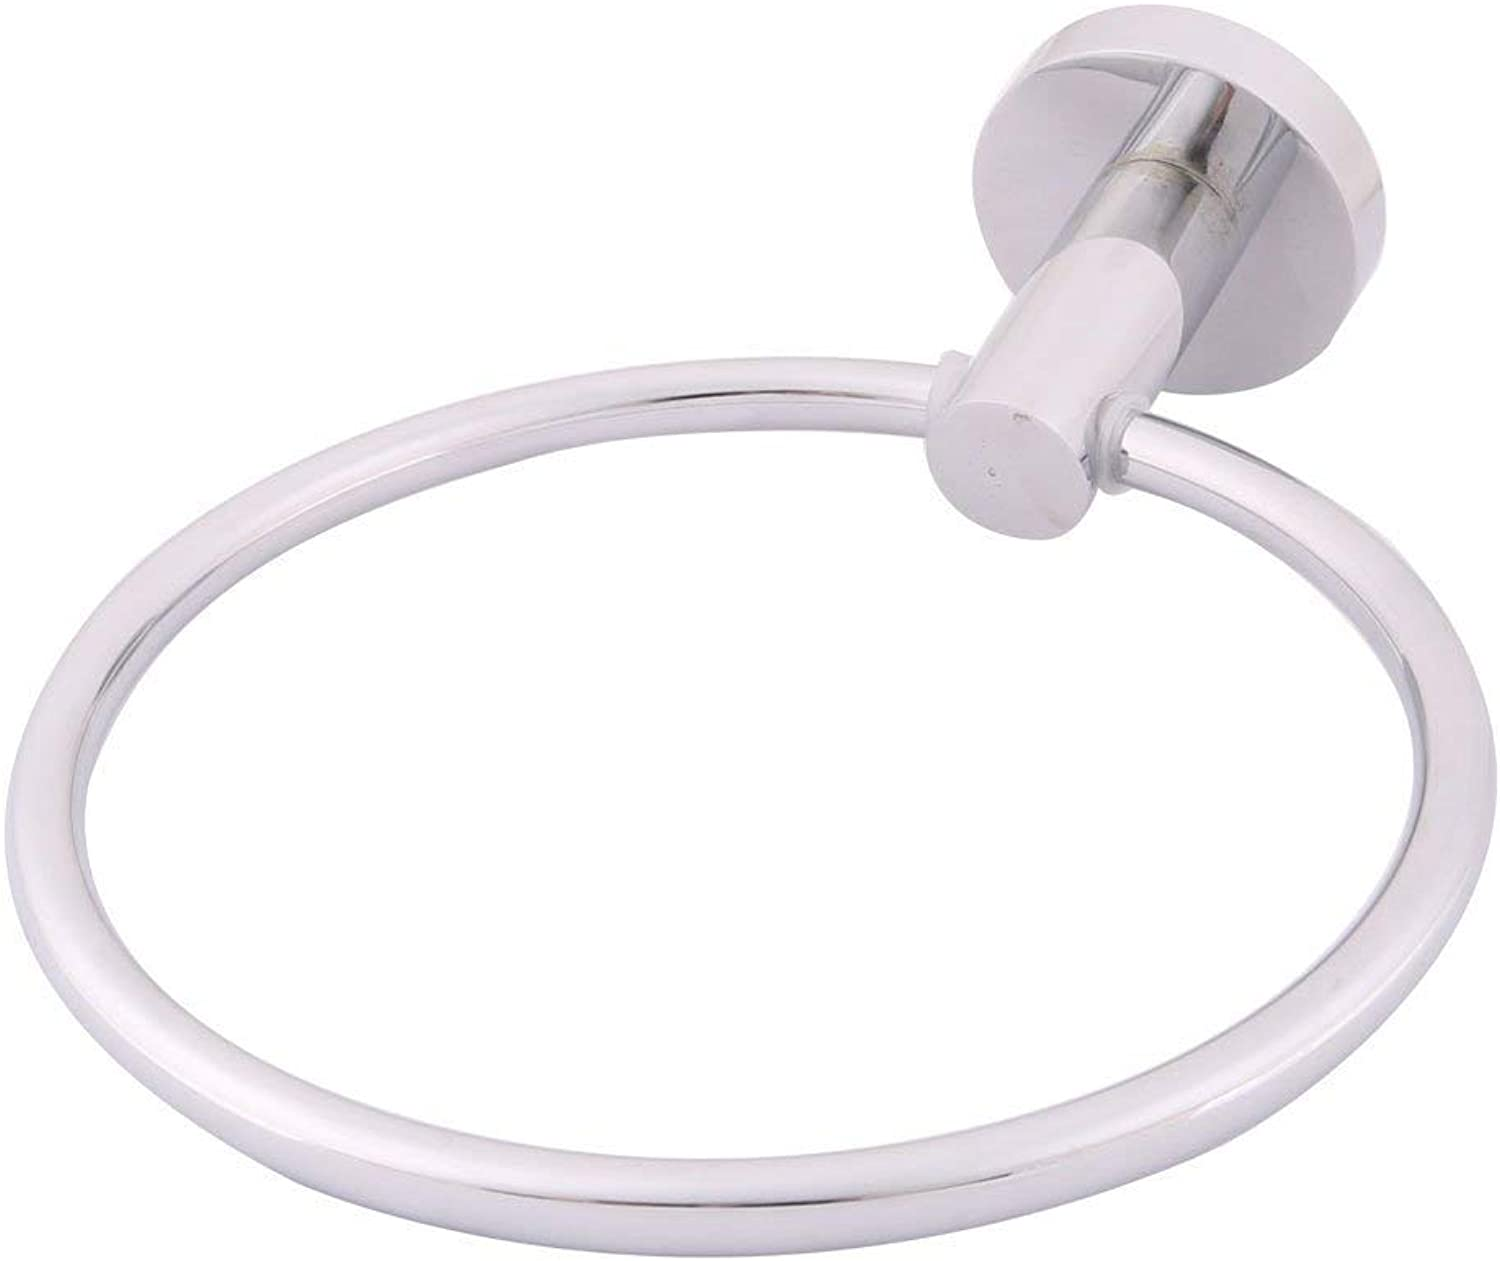 Stainless Steel Dormitory Shower Towel Handtowel Hanging Ring Holder Siver Tone